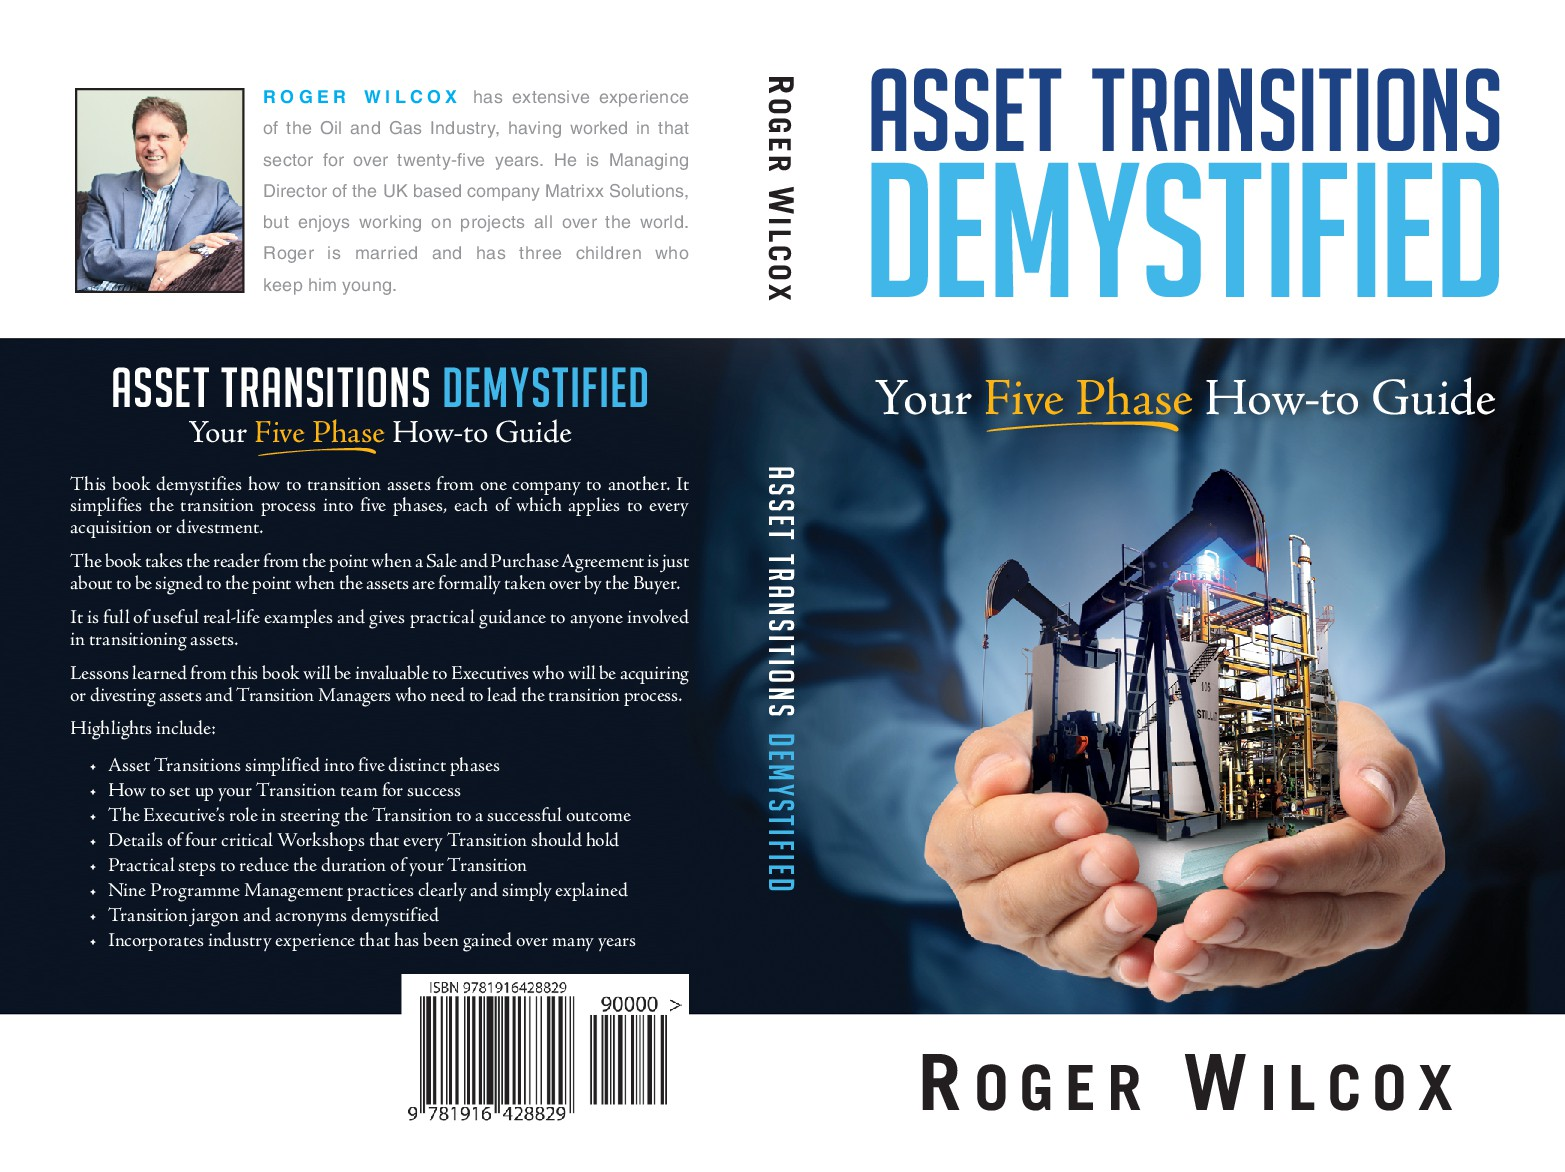 Create eye catching book covers for multi-million dollar transitions